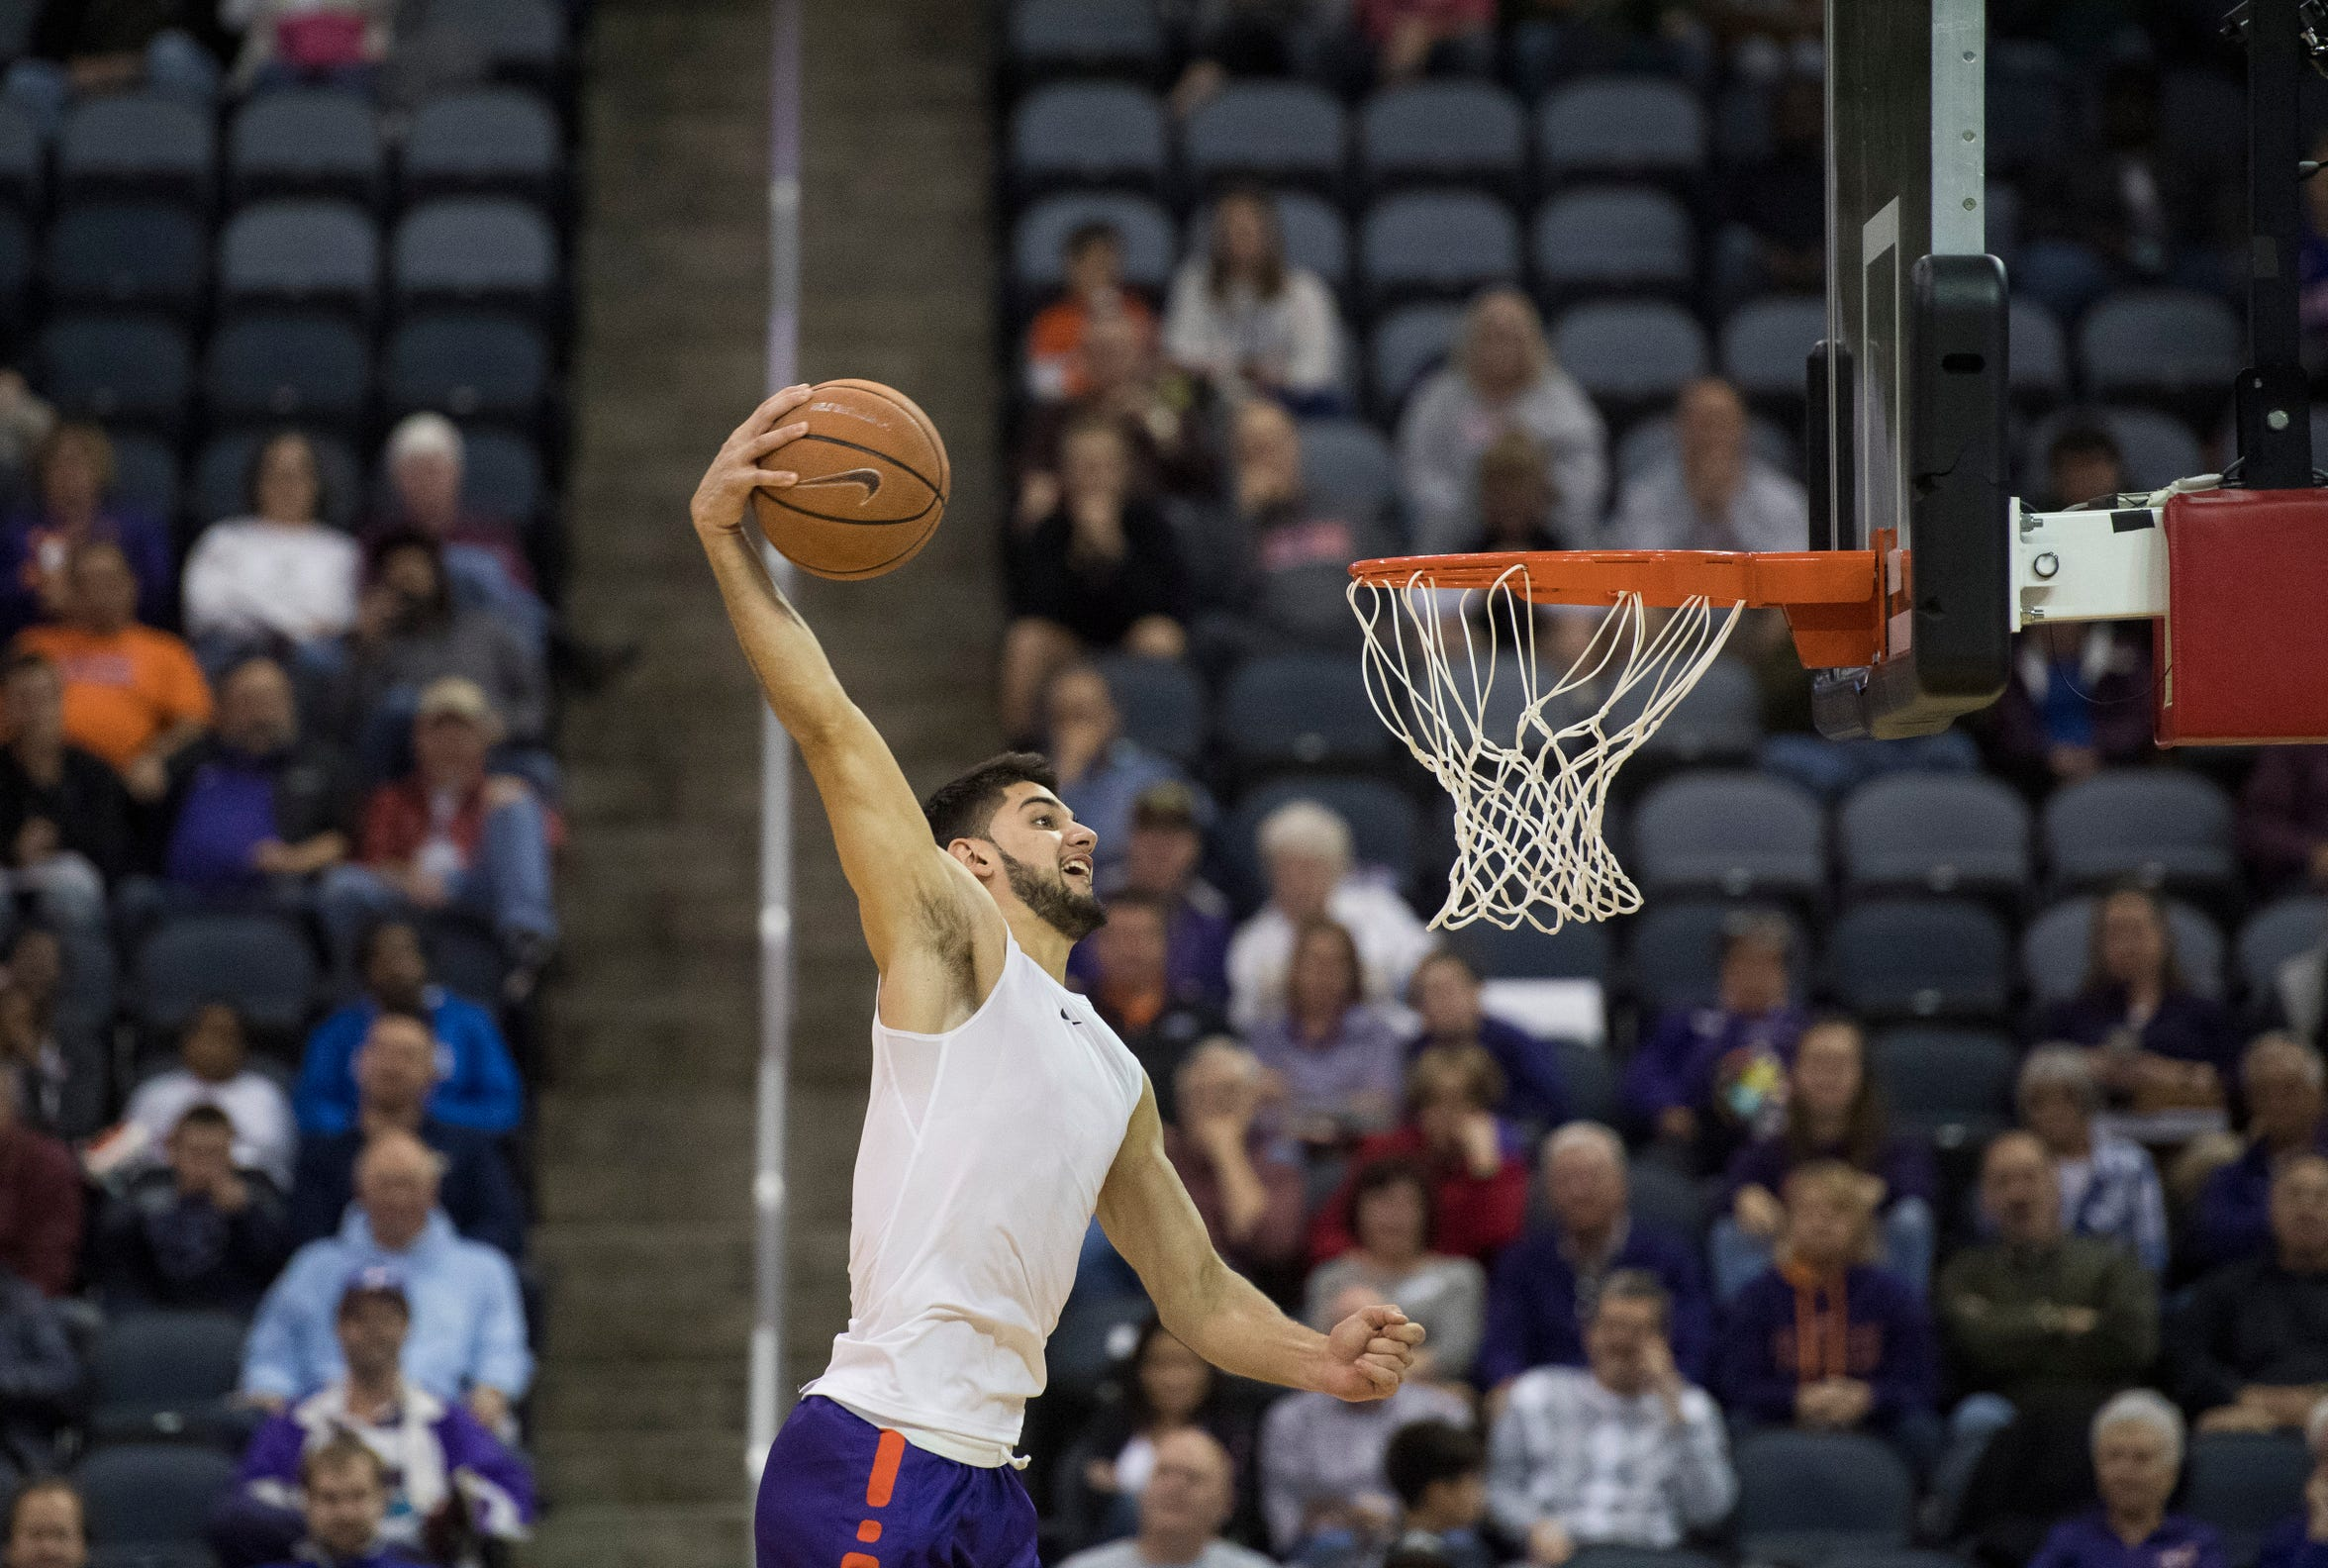 Aces guard Sam Cunliffe pulls off a tomahawk during the dunk contest of the 2018 Hoopfest event at Ford Center.